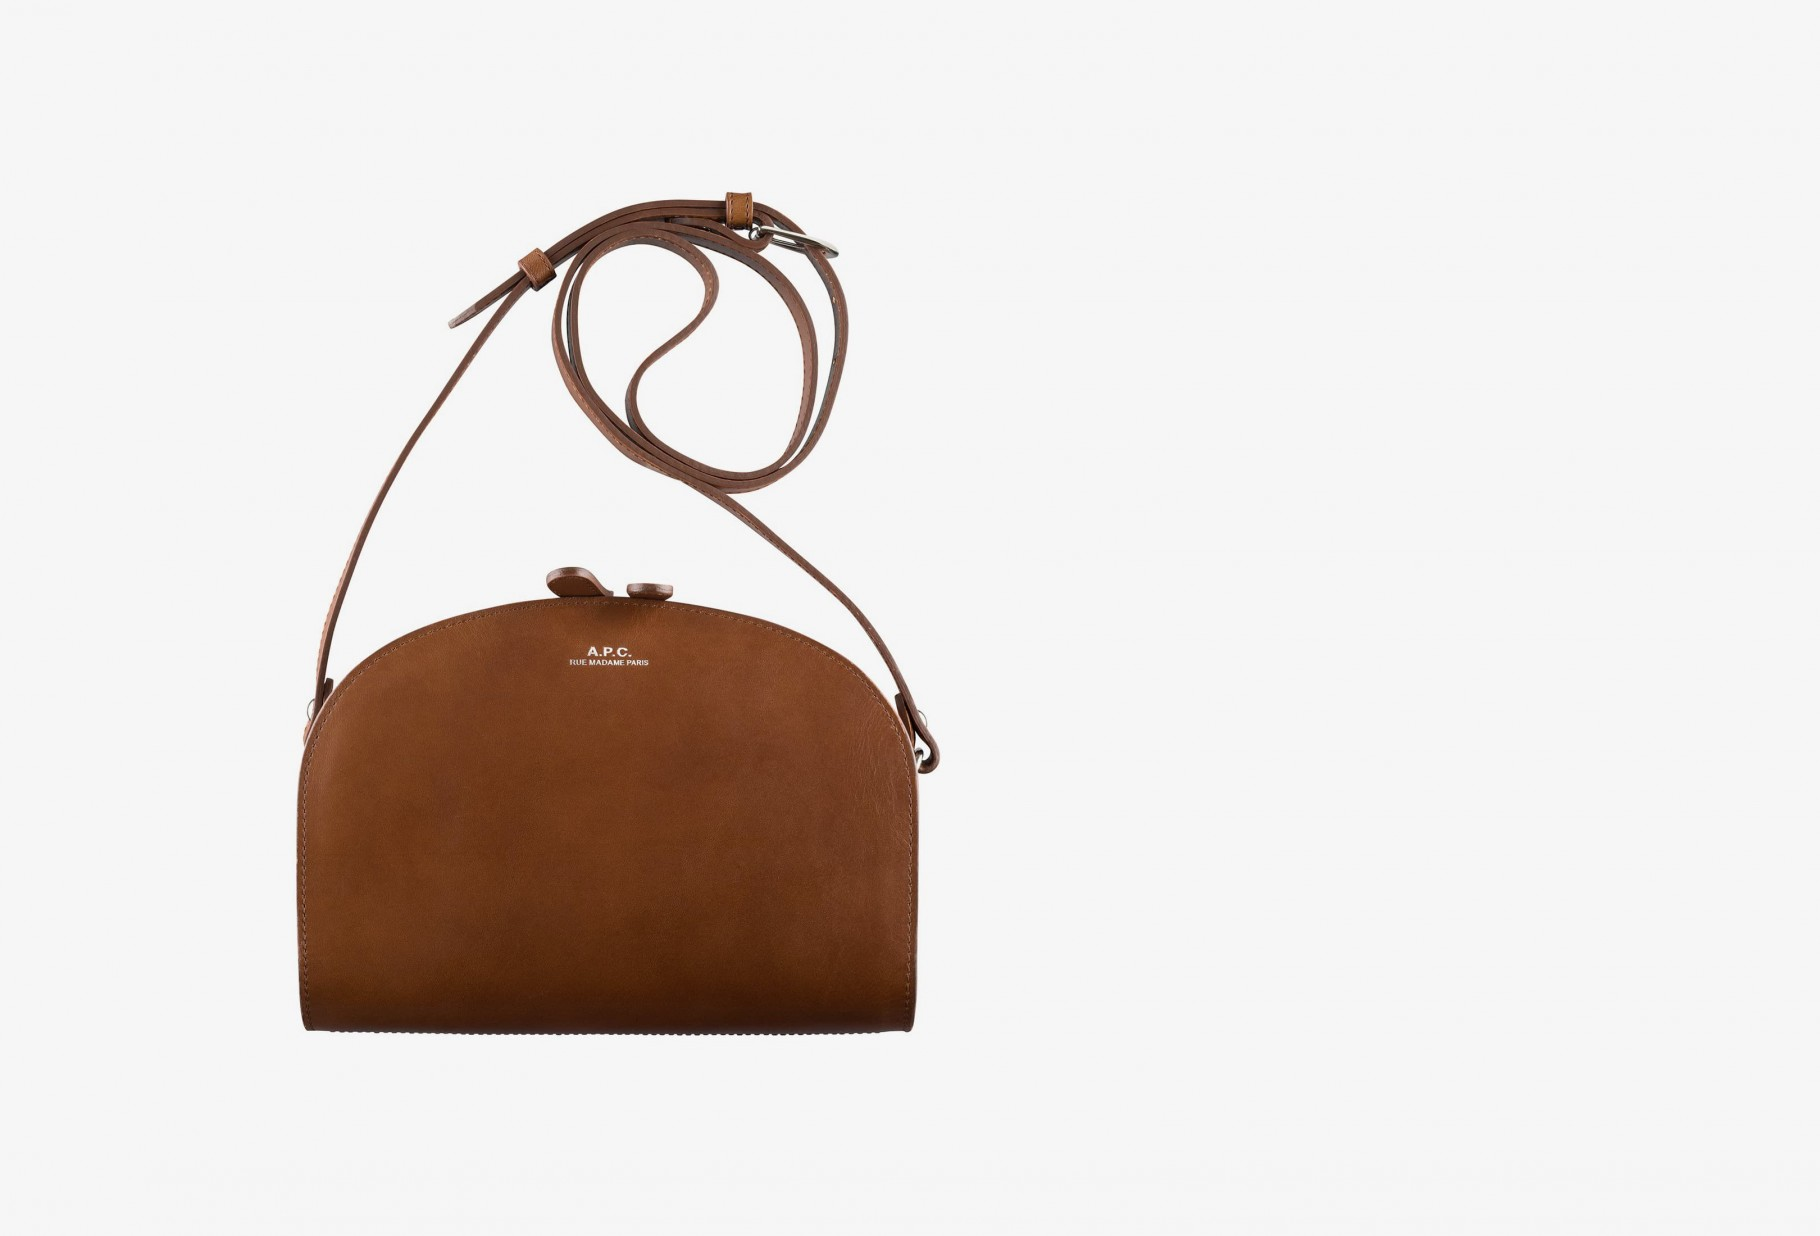 A.P.C. FOR WOMAN / Sac demi-lune Noisette